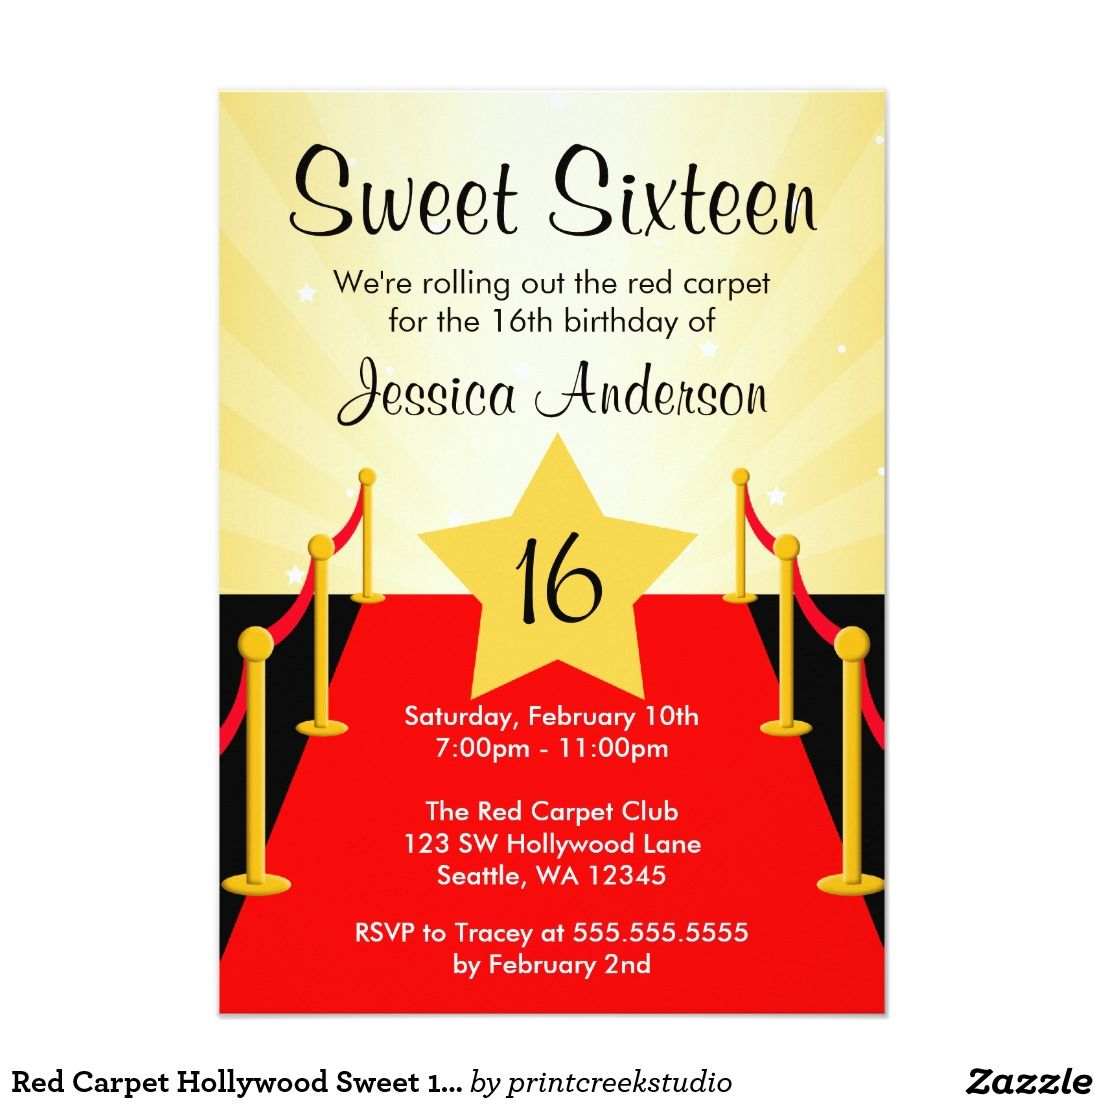 Red Carpet Hollywood Sweet 16 Birthday Party Invitation | Sweet 16 ...